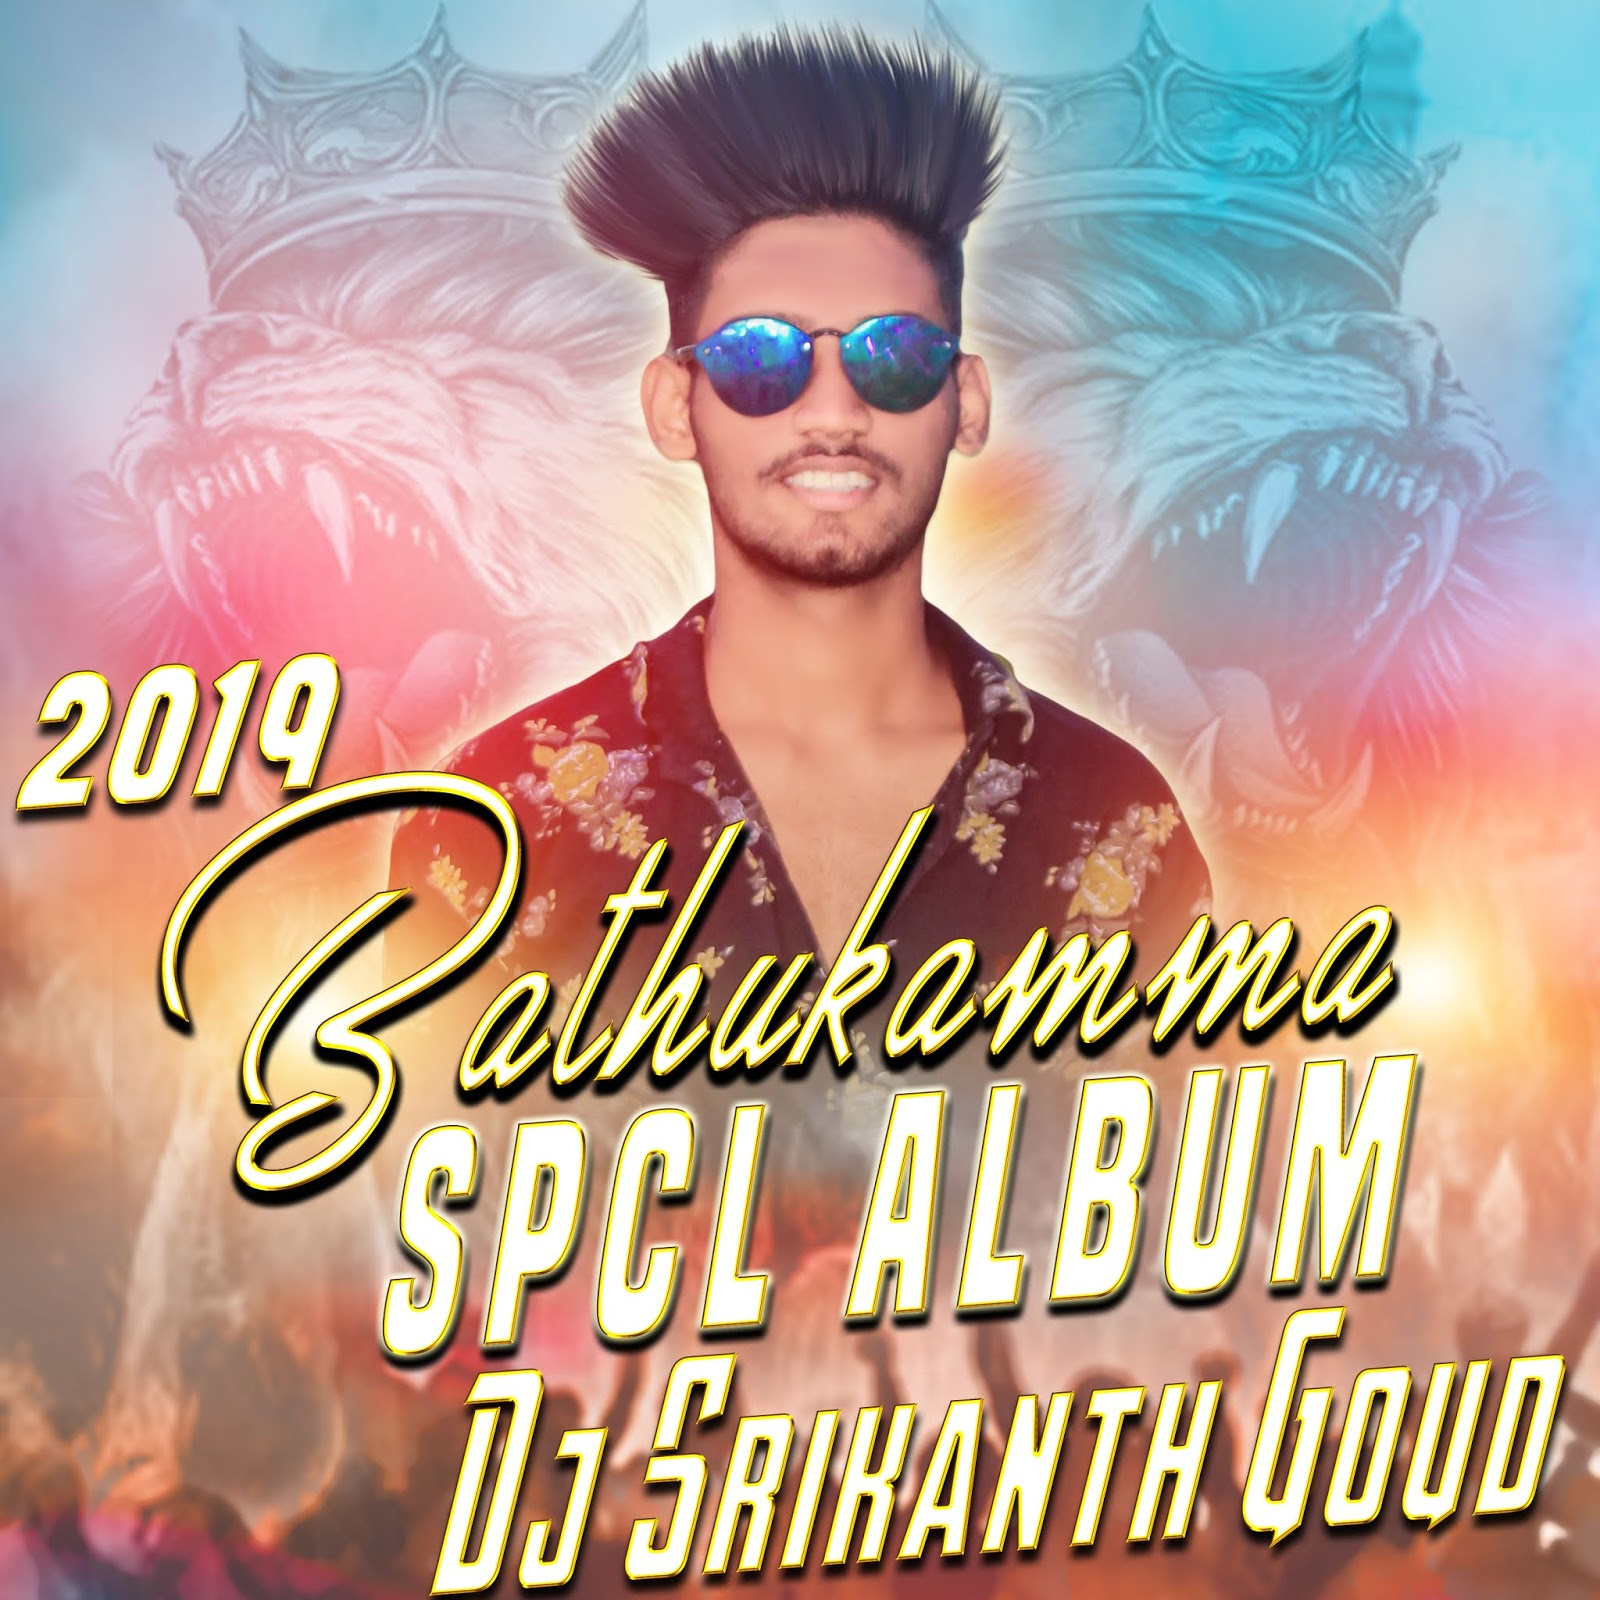 Dj Prashanth Dandu Songs Download, Dj Prashanth Dandu Songs, Dj Prashanth Dandu Songs Free Download, Dj Prashanth Dandu Songs Download Mp3, Dj Prashanth Dandu Birthday Song, Dj Prashanth Dandu Download, Dj Prashanth Dandu Happy Birthday, Dj Prashanth Dandu Chatal Band, Dj Prashanth Dandu Soundcloud, Dj Prashanth Dandu Dj Songs, Dj Prashanth Dandu Happy Birthday Song Download,Bathukamma Dj Songs 2019, Bathukamma Dj Songs Remix, Bathukamma Dj Songs Telugu, Bathukamma Dj Songs Telangana, Bathukamma Dj Songs 2014, Bathukamma Dj Songs 2017, Bathukamma Dj Songs New, Bathukamma Dj Songs V6, Bathukamma Dj Songs Rama Rama Uyyalo, Bathukamma Dj Songs All, Bathukamma Dj Songs Audio, Bathukamma Dj Songs All Mix, Bathukamma Dj Songs And Dance, Bathukamma Dj Songs All Telugu, Bathukamma Dj Songs Album Songs, Bathukamma Dj Songs Audio Download, Bathukamma Dj Songs And Videos, Bathukamma Dj Songs Bathukamma Dj, Bathukamma Dj Songs Bass, Bathukamma Dj Songs Bathukamma Dj Songs Telugu, Bathukamma Dj Songs Bonalu, Bathukamma Dj Songs By Mangli, Bathukamma Dj Songs Bithiri Sathi, Bathukamma Bathukamma Uyyalo Dj Songs, Bathukamma Dj Songs Full Bass, Banjara Bathukamma Dj Songs, Bathukamma Dj Songs Com 2019, Bathukamma Dj Songs Chithu Chithula Bomma, Bathukamma Dj Songs Com, Bathukamma Dj Songs Chittu Chittula Bomma, Bathukamma Dj Songs Coming, Bathukamma Dj Songs Chatal Band Remix, Bathukamma Dj Songs Com Telugu, Bathukamma Dj Songs Com Download, Bathukamma Dj Songs Dj Songs, Bathukamma Dj Songs Dance, Bathukamma Dj Songs Dance 2018, Bathukamma Dj Songs Dance 2019, Bathukamma Dj Songs Dance Performance 2018, Bathukamma Dj Songs Dance Steps, Bathukamma Dj Songs Dance Mangli, Bathukamma Dj Songs Folk Songs, Bathukamma Dj Songs Full, Bathukamma Dj Songs Full Movie, Bathukamma Dj Songs Free Download, Bathukamma Dj Songs Free Download 2017, Bathukamma Dj Songs Gallu Galluna, Bathukamma Dj Songs Hd, Bathukamma Dj Songs Hindi, Hyderabad Bathukamma Songs Dj, Bathukamma Super Hit Dj Songs, Hyderabadi Bathukamma Dj Songs, Bathukamma Dj Songs In Telugu, Bathukamma Dj Songs In Telugu 2019, Bathukamma Dj Songs In 2019, Bathukamma Dj Songs In Chatal Band, Bathukamma Dj Songs In Remix, Bathukamma Old Dj Songs In Telugu, Bathukamma Songs Jukebox Dj, Bathukamma Dj Songs Kolokolo, Bathukamma Dj Songs Kolatam, Bathukamma Dj Songs Kutty, Bathukamma Dj Songs Kotha Patalu, Bathukamma Dj Songs Kavali, Bathukamma Dj Songs Kannada, Bathukamma Songs Telangana Dj Kolatam, Bathukamma Kolatam Telugu Songs Dj, Dj Karthik Bathukamma Songs, Lambadi Bathukamma Dj Songs, Bathukamma Dj Songs Telangana Lo Putti, Latest Bathukamma Dj Songs 2018, Bathukamma Dj Songs Mangli Telanganalo Putti, Bathukamma Dj Songs Mix, Bathukamma Dj Songs Mix Chatal Band, Bathukamma Dj Songs Madhu Priya, Bathukamma Dj Songs Mp3 Download, Bathukamma Dj Songs Movie, Bathukamma Dj Songs Mp3, Bathukamma Dj Songs Mp3 Free Download Naa Songs, Bathukamma Dj Songs Mp3 Free Download, Bathukamma Dj Songs Nirmala, Bathukamma Dj Songs Nirumala, Bathukamma Dj Songs Nonstop, Bathukamma Dj Songs Naa Songs Download, Bathukamma Dj Songs Naa Songs, New Bathukamma Dj Songs 2018, Nagadarilo Bathukamma Dj Songs, Bathukamma Dj Songs Open, Bathukamma Dj Songs Only, O Puvvula Bomma Bathukamma Dj Songs, Bathukamma Dj Songs Please, Bathukamma Dj Songs Play, Bathukamma Dj Songs Patalu, Bathukamma Dj Songs Piano, Bathukamma Dj Songs Private, Bathukamma Dj Songs Portal, Bathukamma Dj Songs Padal, Bathukamma Dj Songs Qawwali, Bathukamma Dj Songs Remix 2019, Bathukamma Dj Songs Rama Rama, Bathukamma Dj Songs Remix 2018, Bathukamma Dj Songs Remix V6, Bathukamma Dj Songs Remix Chatal Band, Bathukamma Dj Songs Remix Telugu, Bathukamma Dj Songs Rahul Sipligunj, Bathukamma Dj Songs Steps, Bathukamma Dj Songs Songs Free Download, Bathukamma Dj Songs Singidi, Saddula Bathukamma Dj Songs, Ts Bathukamma Dj Songs, Bathukamma Dj Songs Telugu 2019, Bathukamma Dj Songs Telugu Remix, Bathukamma Dj Songs Telugu 2018, Bathukamma Dj Songs Telugu Movies, Bathukamma Dj Songs Tamil, Bathukamma Dj Songs Telugu Download, Bathukamma Dj Songs Uriki Utharana, Uyyala Bathukamma Songs Dj, Bathukamma Dj Songs V6 2018, Bathukamma Dj Songs V6 2016, Bathukamma Dj Songs Videos Telugu, Bathukamma Dj Songs Video Coming, Bathukamma Dj Songs Video Telugu Lo, Bathukamma Dj Songs With Dance, Bathukamma Dj Songs With Chatal Band, Bathukamma Songs With Dj, Bathukamma Dj Remix Songs With Chatal Band, New Bathukamma Dj Songs 2019, New Bathukamma Dj Songs, New Bathukamma Dj Songs 2018 Mangli, Bathukamma New Songs Telugu 2018 Dj Remix, Telangana Bathukamma New Dj Songs, New Bathukamma Dj Remix Songs, Bathukamma Dj Songs 2018, Bathukamma Dj Songs 2019 New, Bathukamma Dj Songs 2018 New, Bathukamma Dj Songs 2016, Bathukamma Dj Songs 2018 Remix, Bathukamma 3d Dj Songs